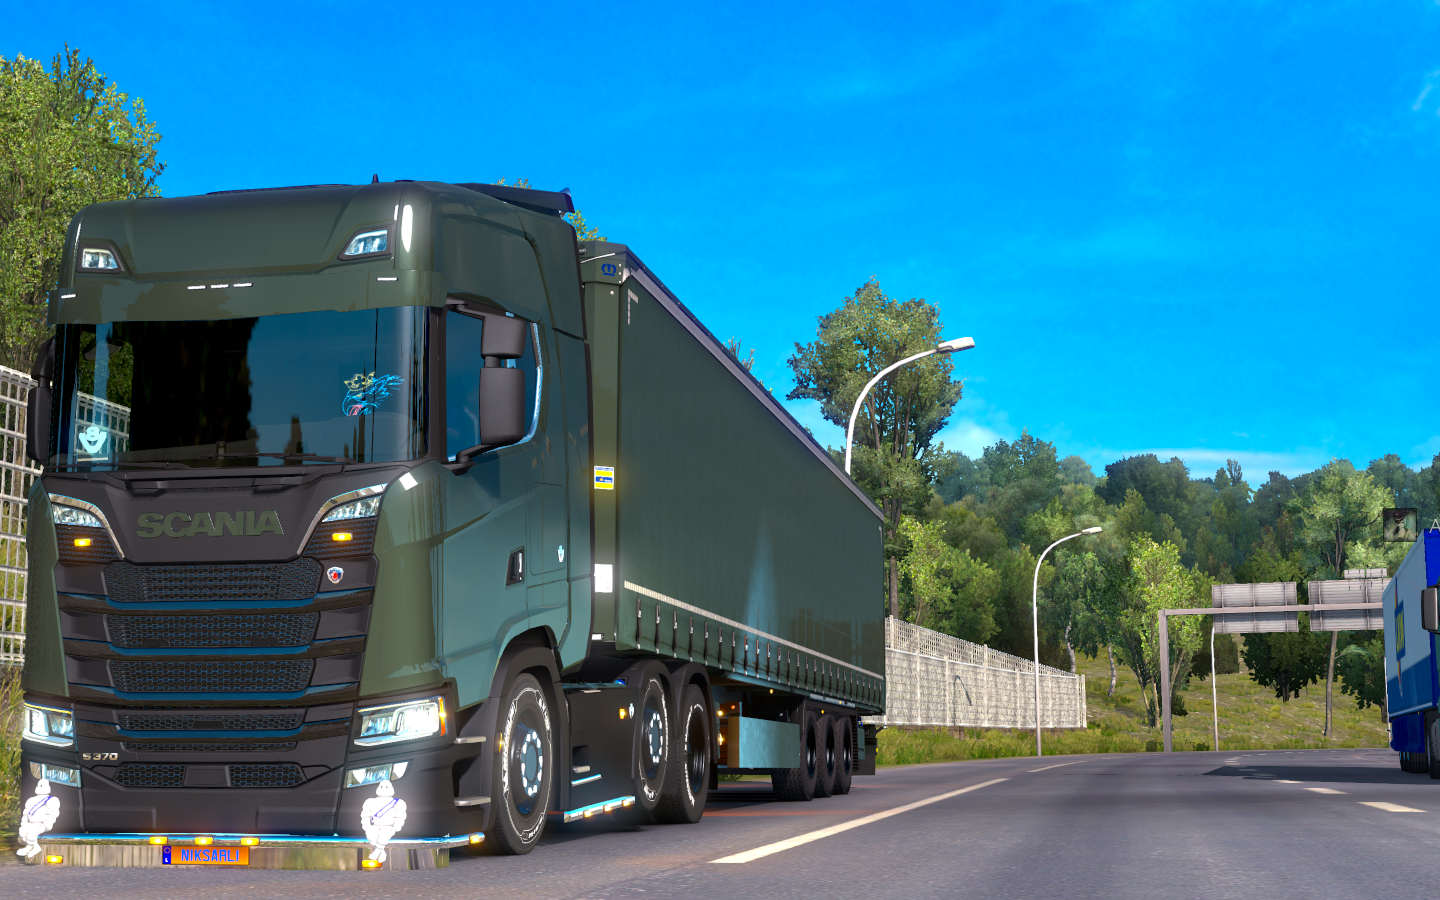 ets2_20190419_233221_00.png